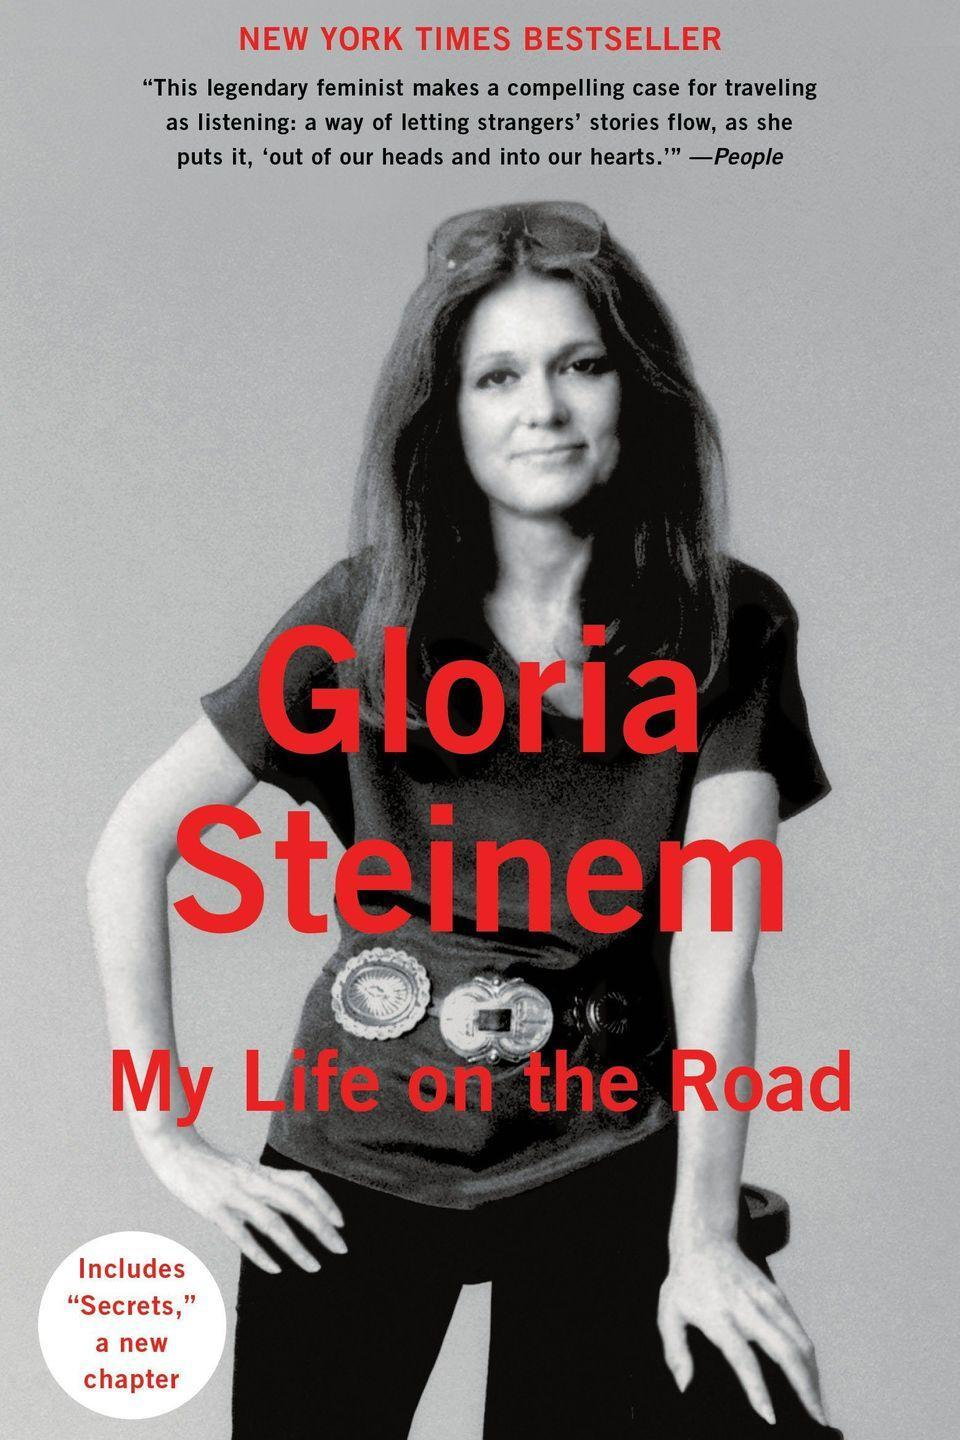 """<p><a class=""""link rapid-noclick-resp"""" href=""""https://www.amazon.co.uk/My-Life-Road-Gloria-Steinem/dp/178074918X?tag=hearstuk-yahoo-21&ascsubtag=%5Bartid%7C1927.g.35935432%5Bsrc%7Cyahoo-uk"""" rel=""""nofollow noopener"""" target=""""_blank"""" data-ylk=""""slk:SHOP NOW"""">SHOP NOW</a></p><p>Gloria Steinem has always been on the move. Ever since she was young, her father would pack the family into the car off onto a new adventure. Although such an early nomadic existence has come with its challenges, it did prepare Steinem for a life on the road as she became an instrumental part of the women's rights movement and a tireless campaigner. This engaging and warm memoir is about that journey and how she'll never give up fighting for her causes. </p>"""